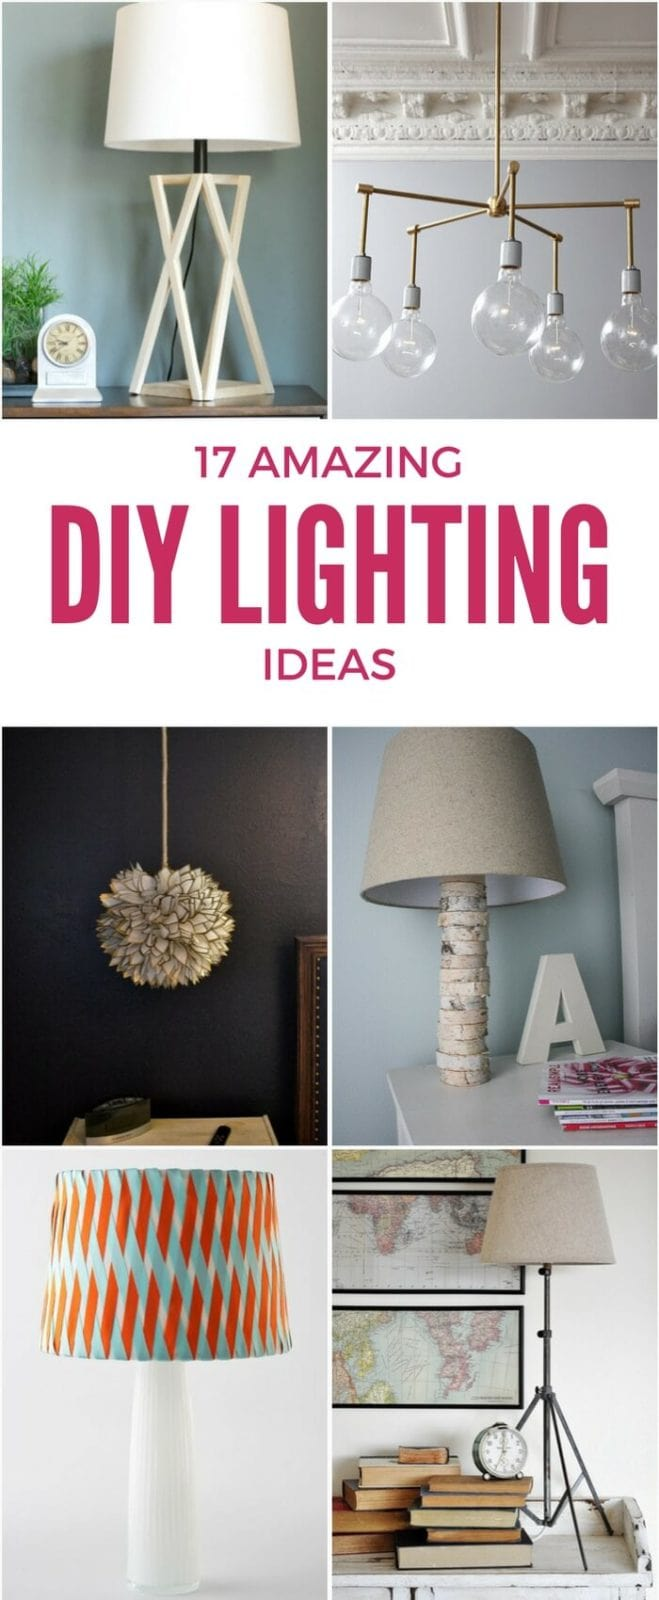 diy lighting ideas. 17 Inspiring DIY Lighting Ideas That Won\u0027t Bust Your Budget Diy